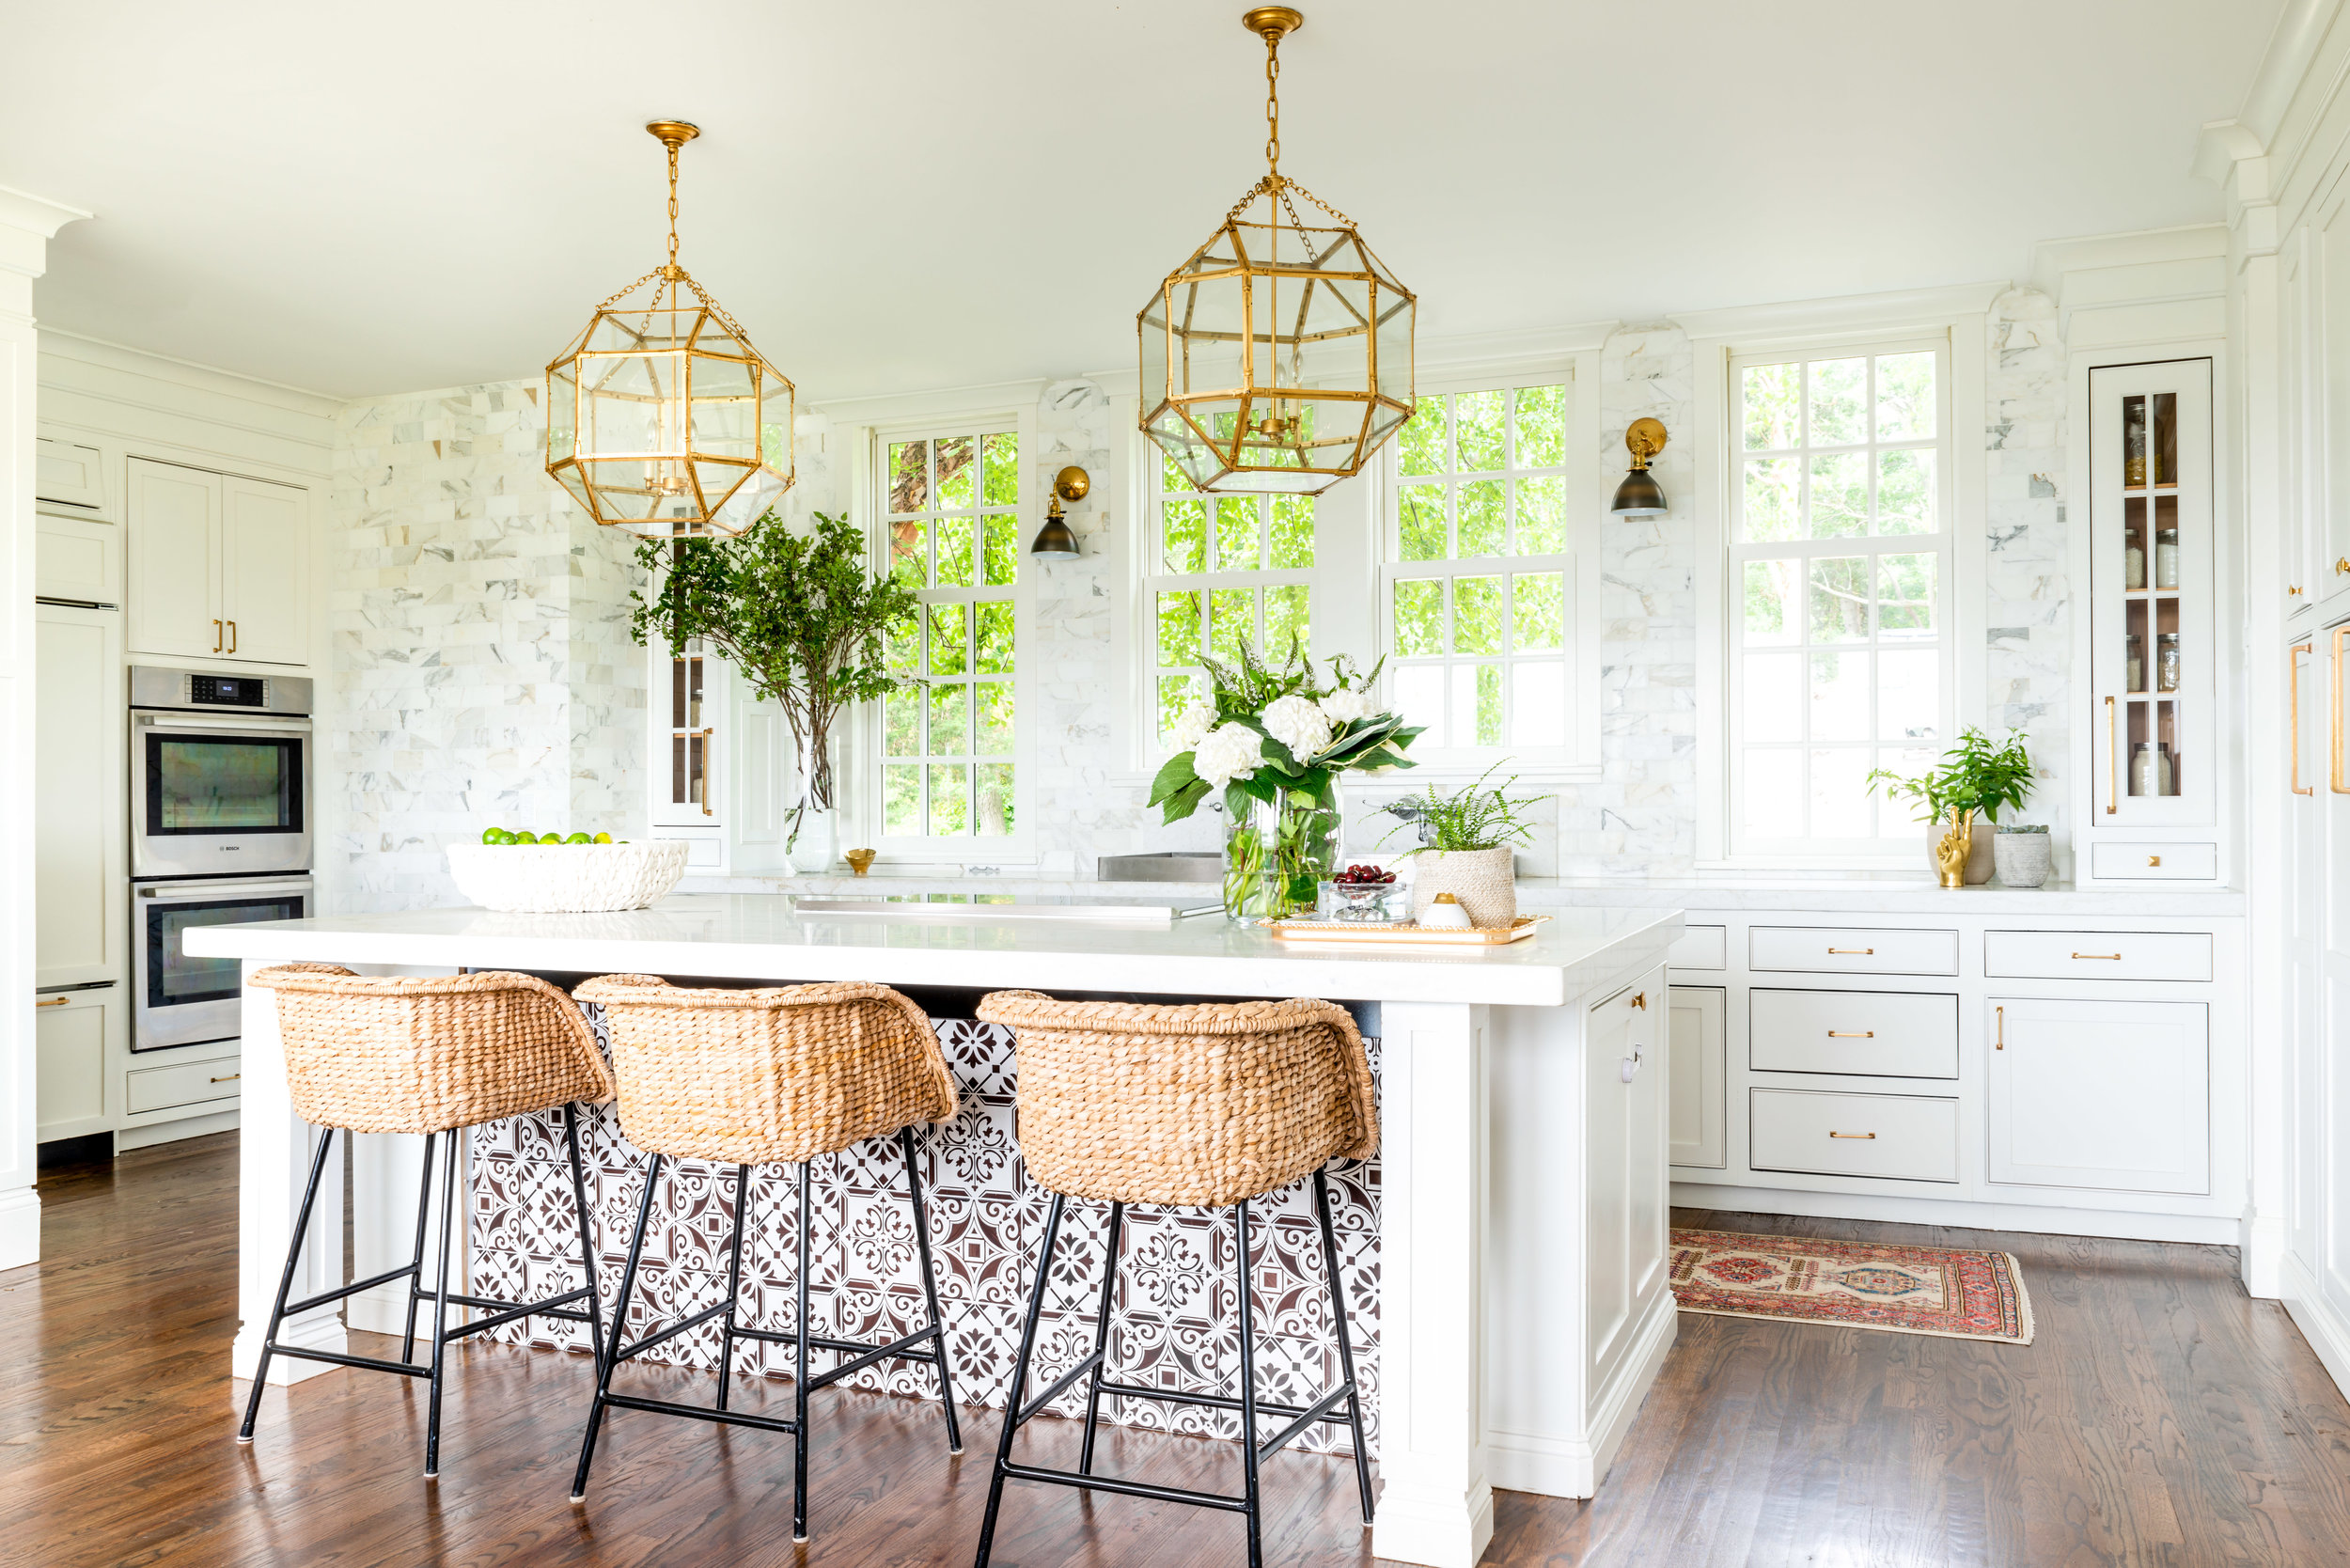 MaggieJerdeDesign Cohasset kitchen project-4450edit (1).jpg